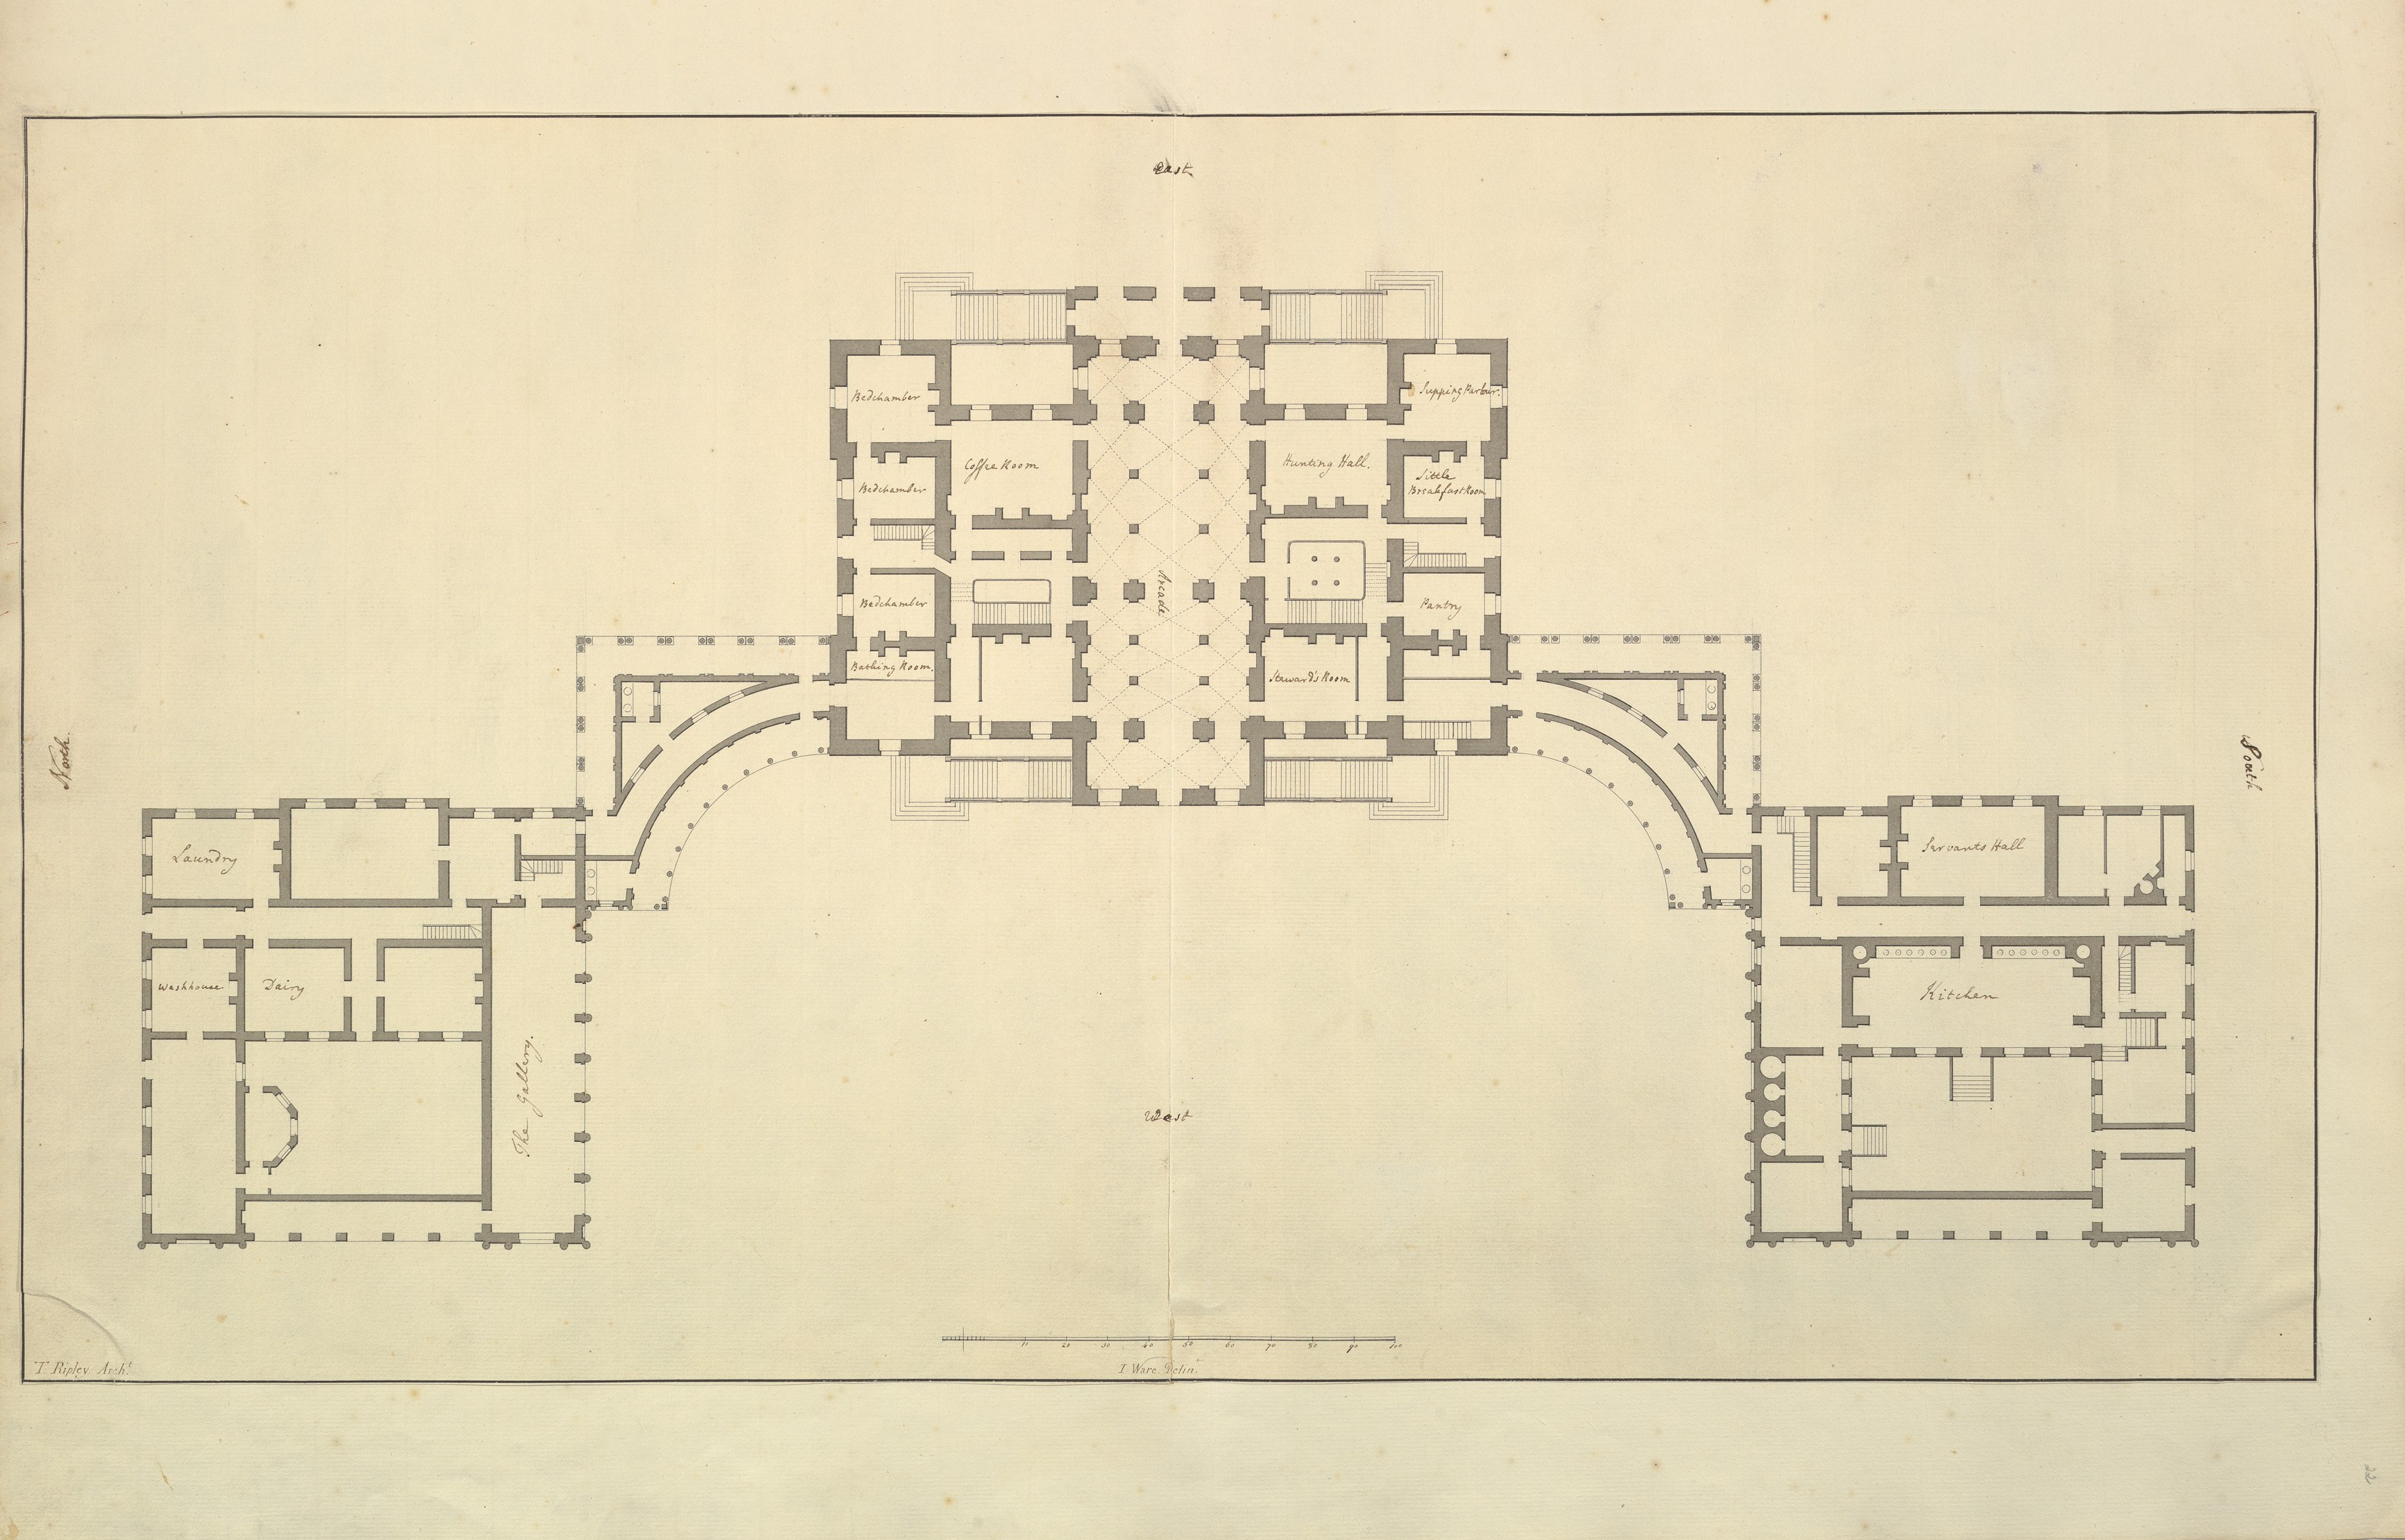 Sleek Houghton Hall Isaac Ware Houghton Ground Plan Isaac Plan C Delirium Plan C Isaac Mega Satan dpreview Plan C Isaac